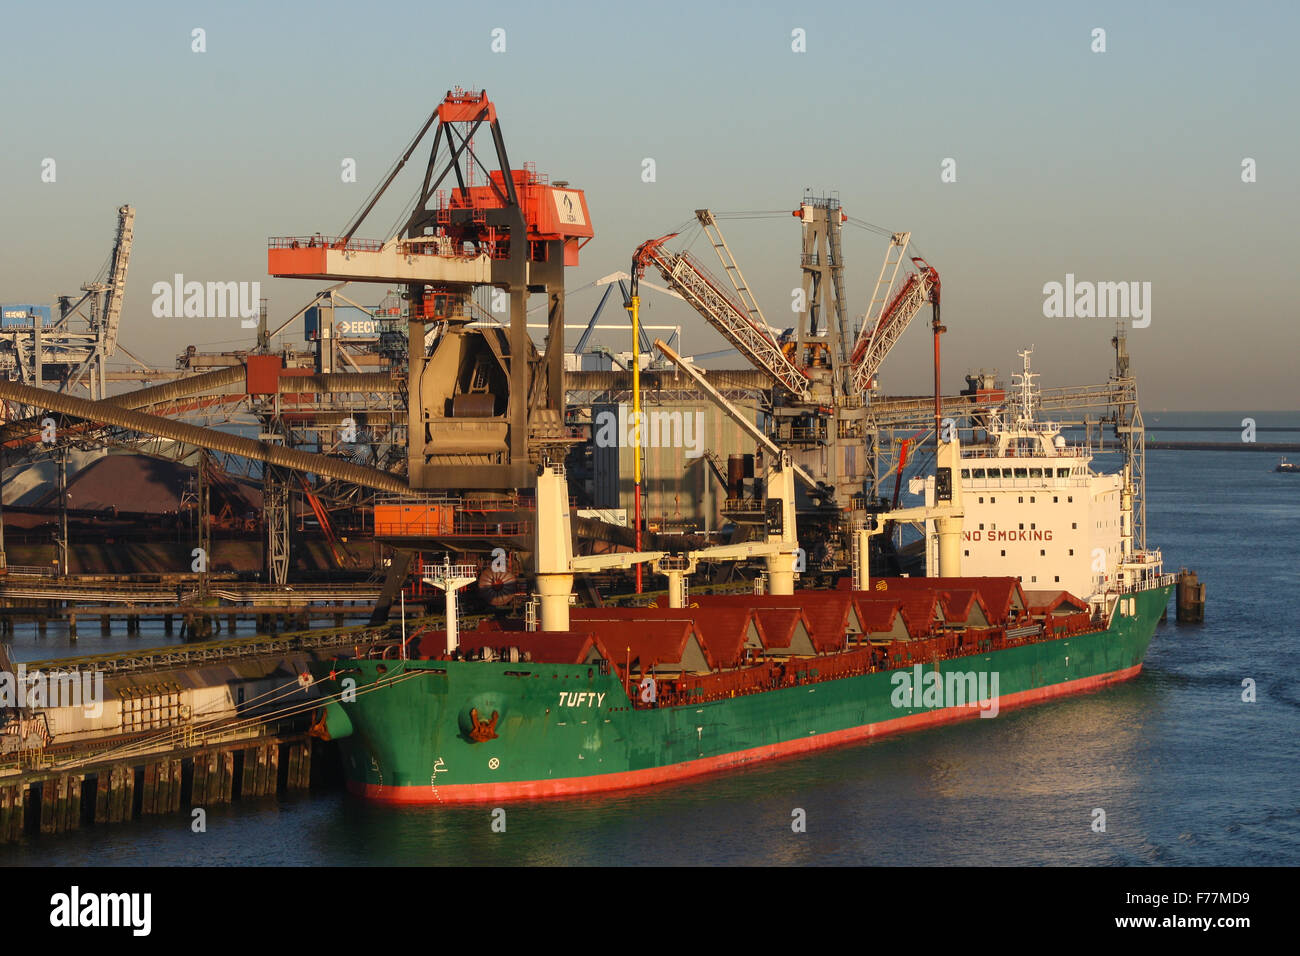 North Sea, Tufty, bulk carrier in Rotterdam harbour at sunrise with shipping, bulk containers tugs - Stock Image